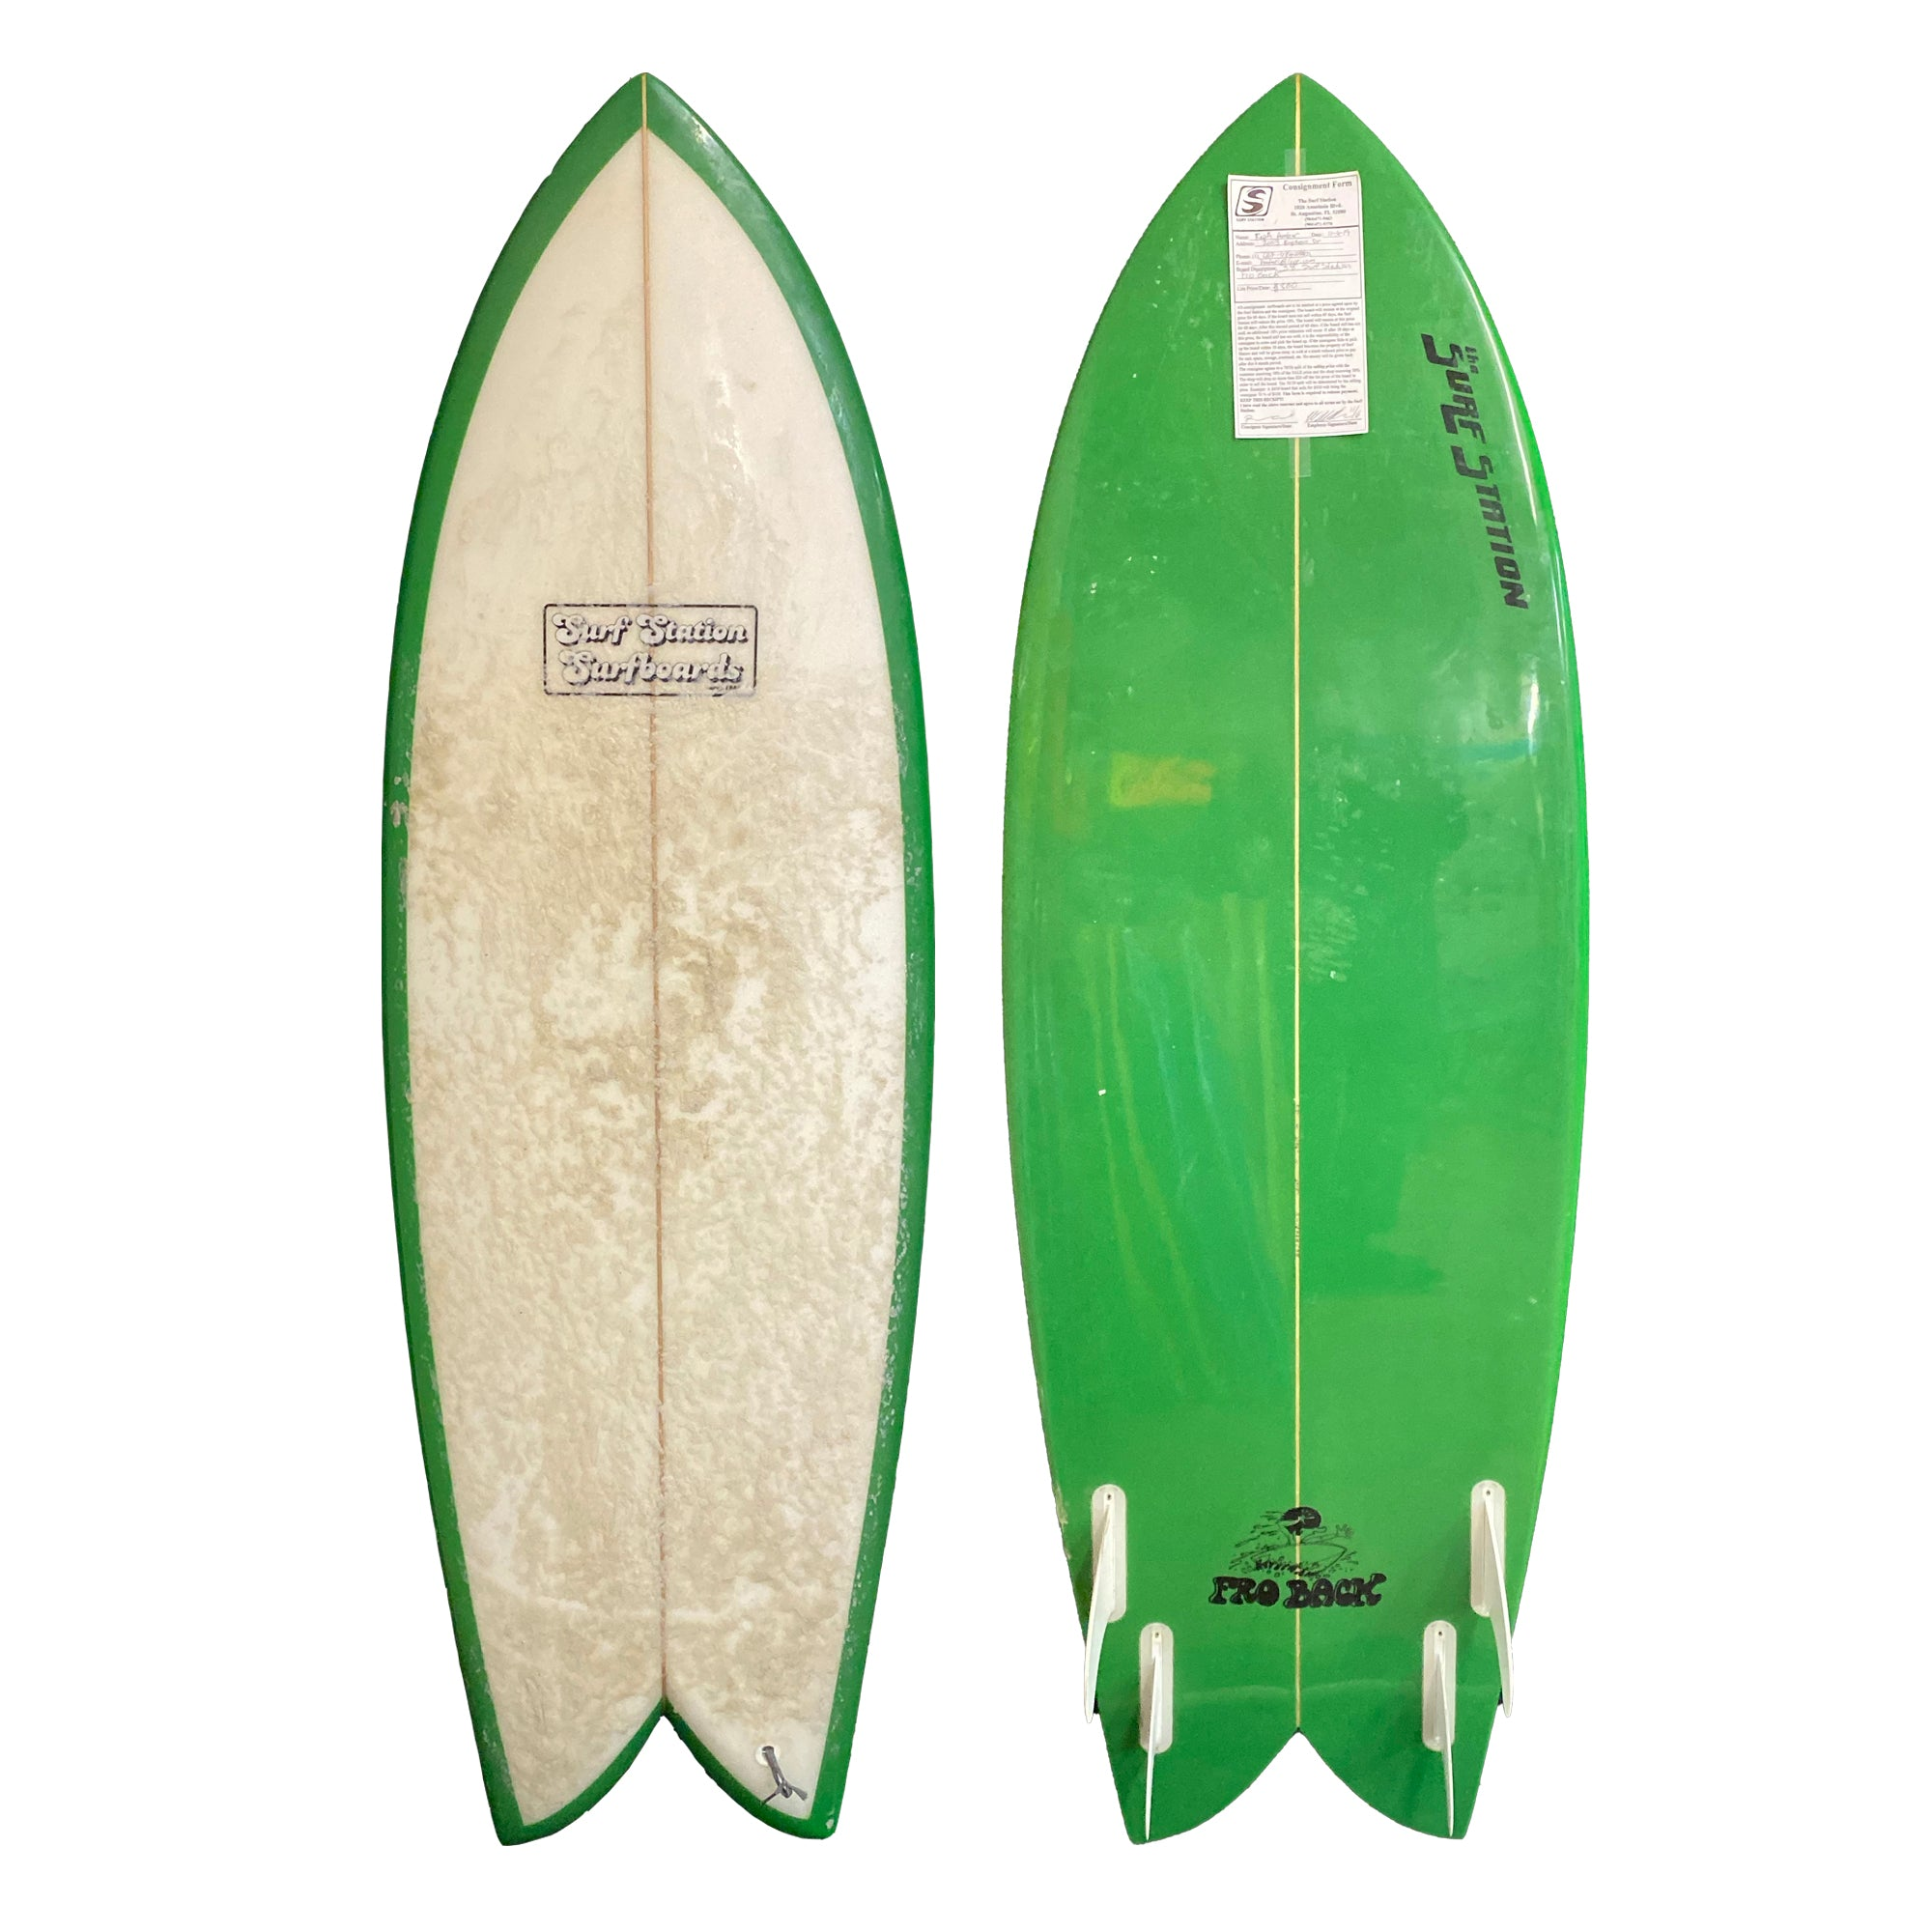 Surf Station Fro Back 5'8 Used Surfboard